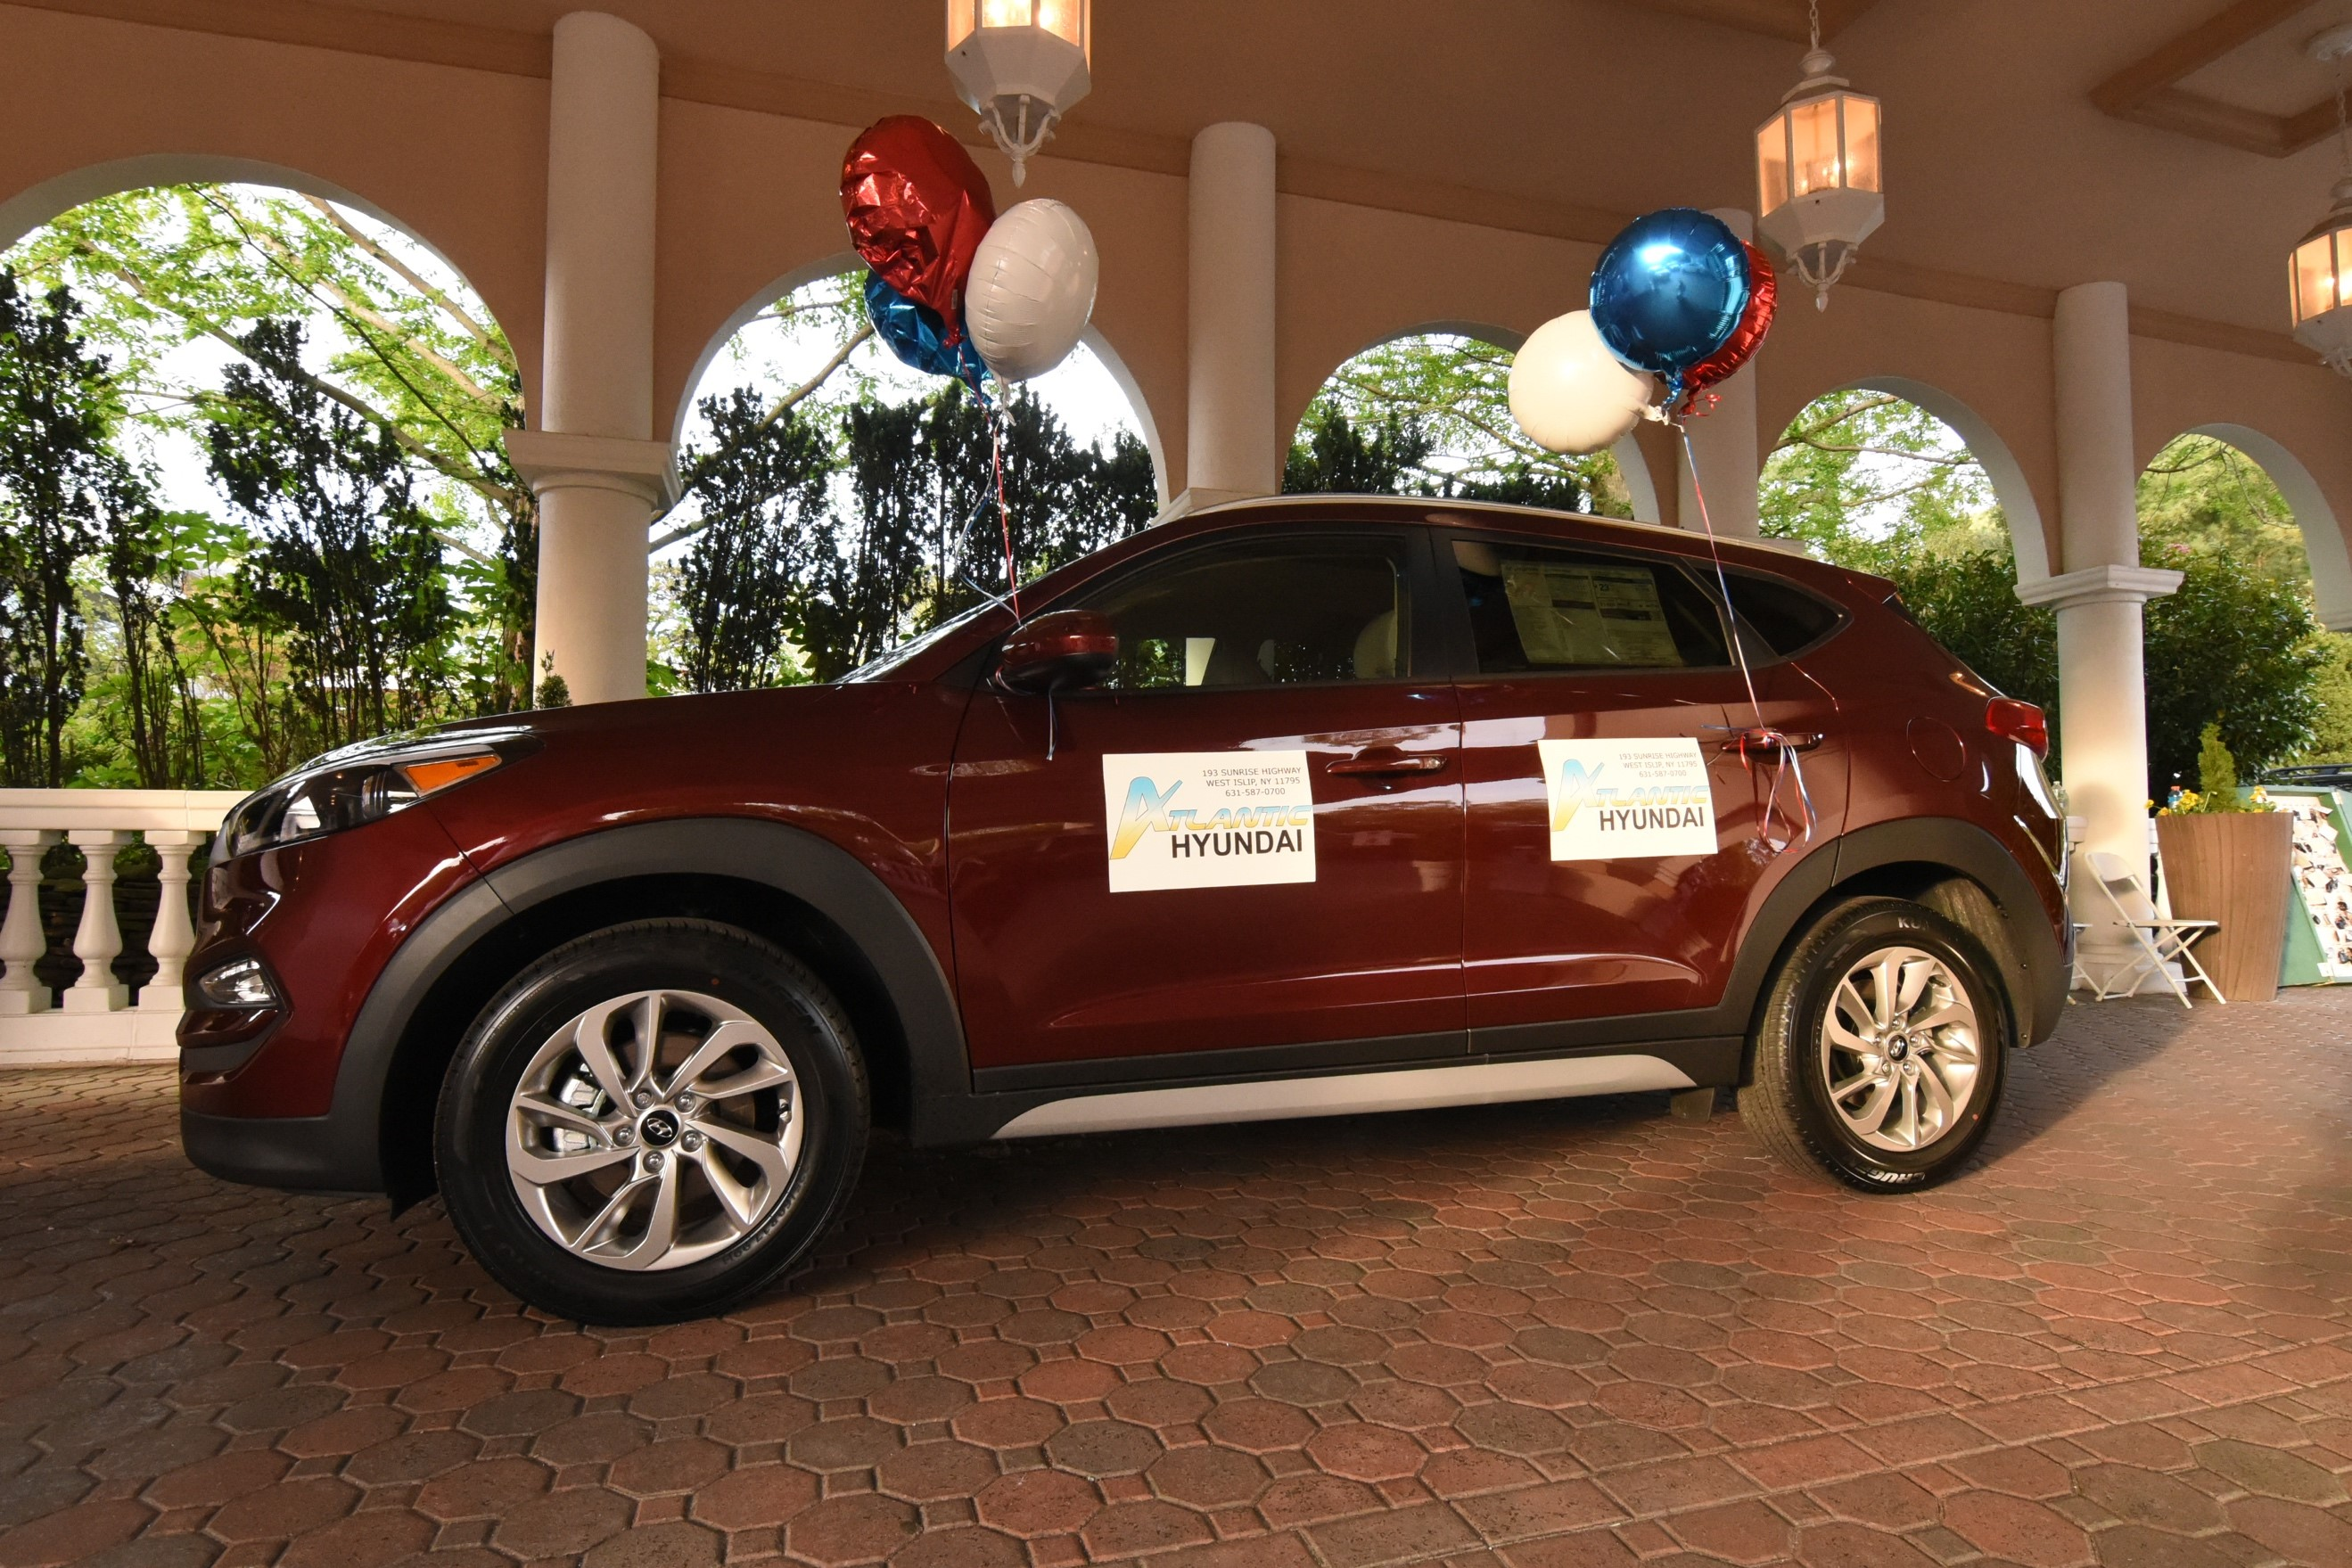 Atlantic Hyundai Donates 2017 Hyundai Tucson for Bouquet of Wishes